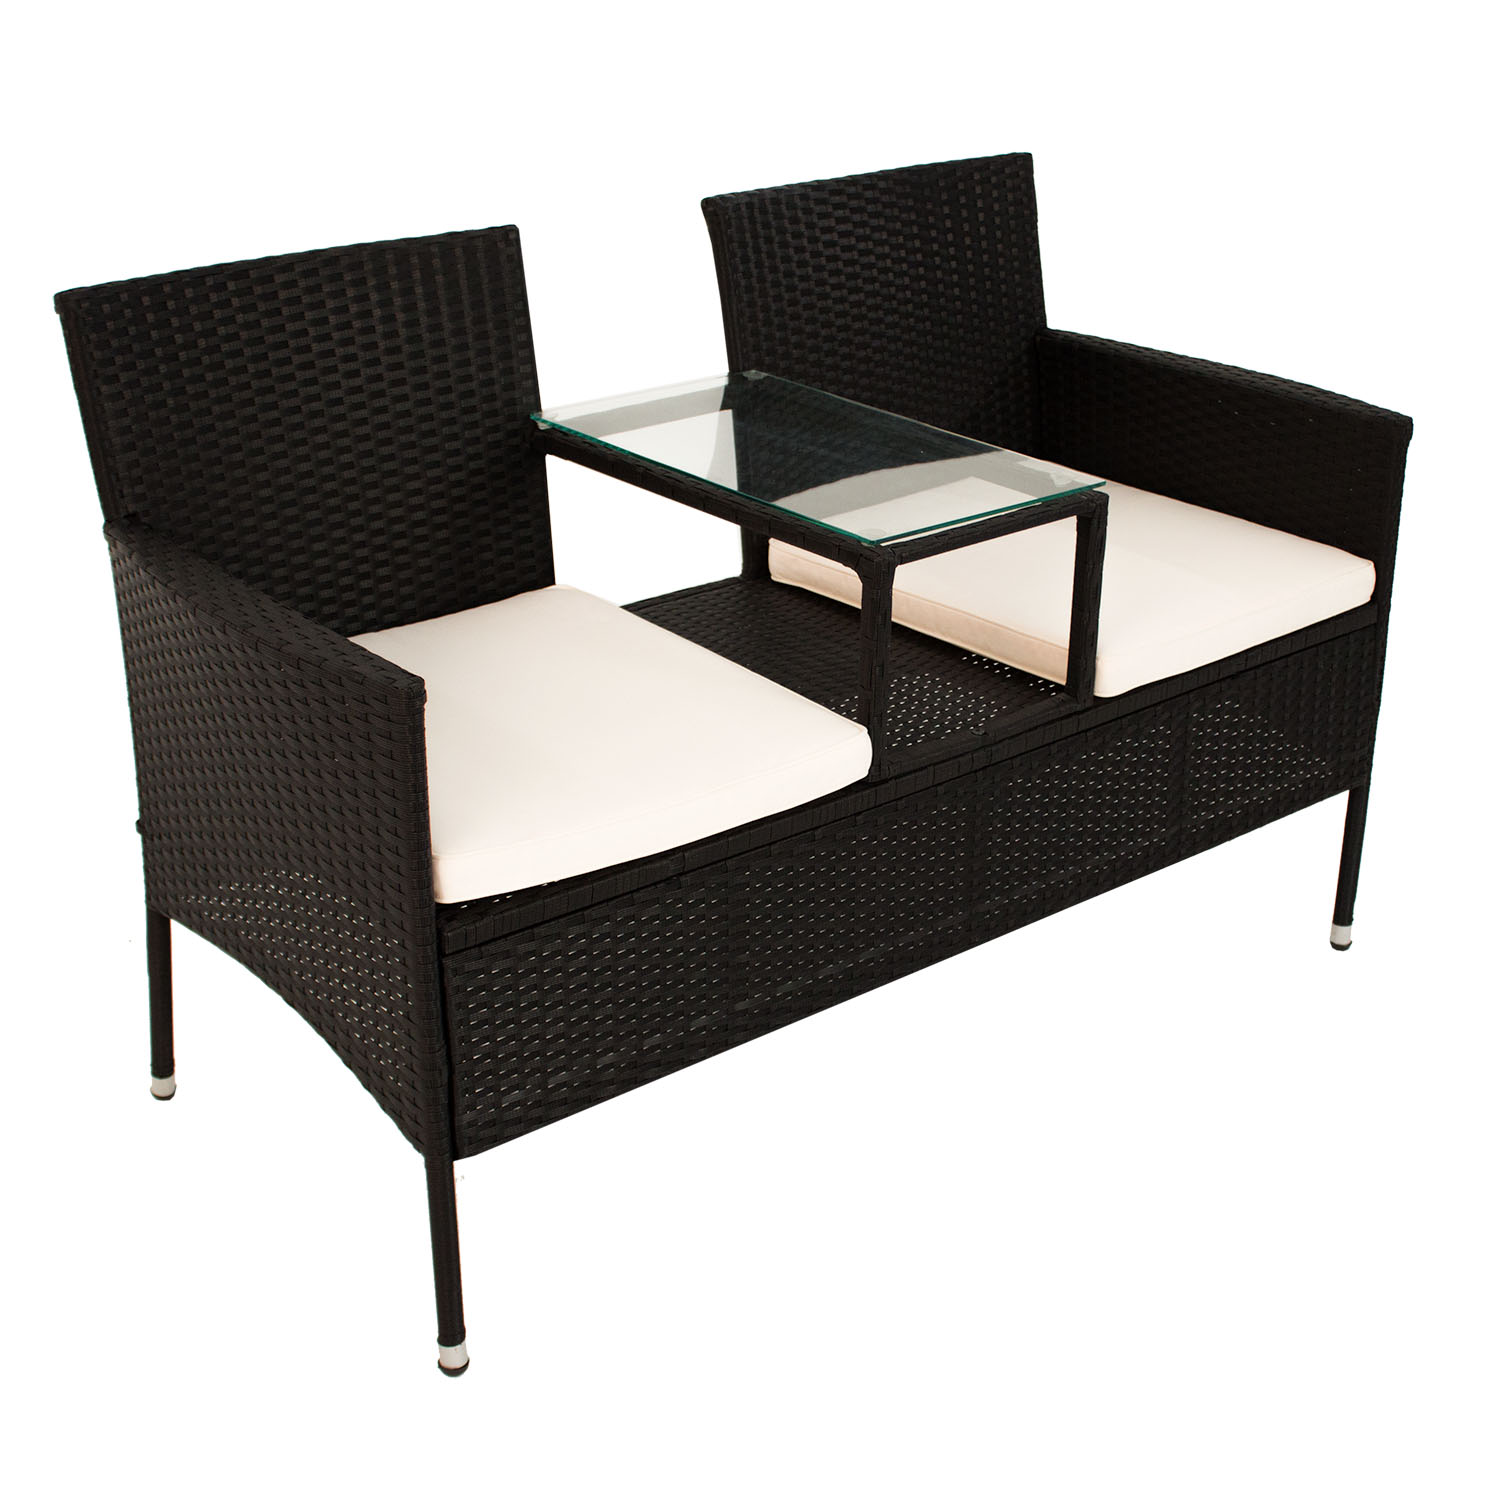 polyrattan gartenm bel gartenbank sitzbank mit tisch sitzgruppe garnitur poly ebay. Black Bedroom Furniture Sets. Home Design Ideas